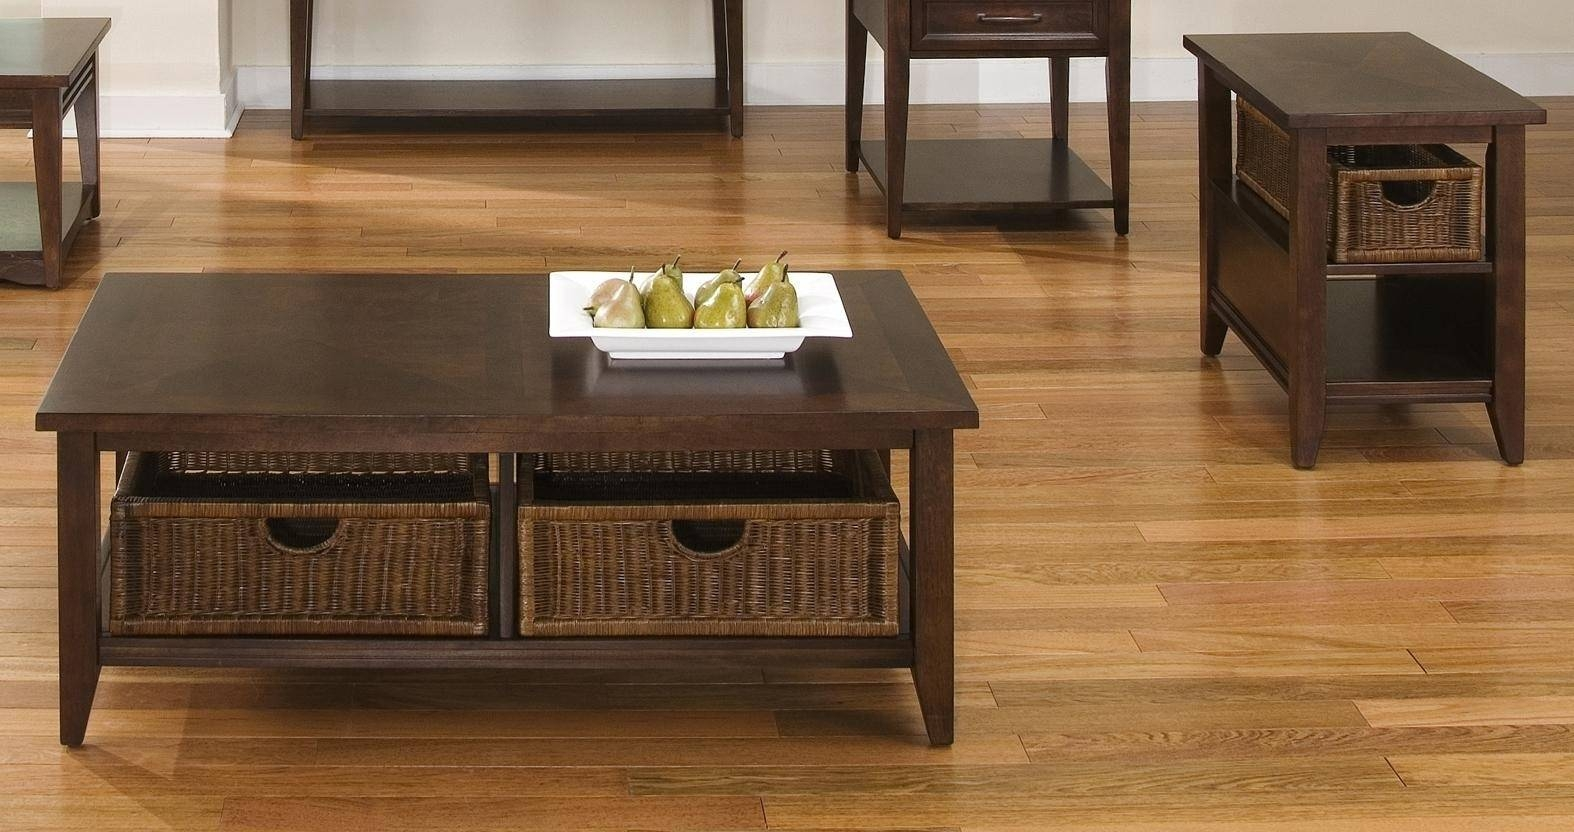 Walmart End Tables And Coffee Tables | Idi Design inside Coffee Table With Matching End Tables (Image 29 of 30)